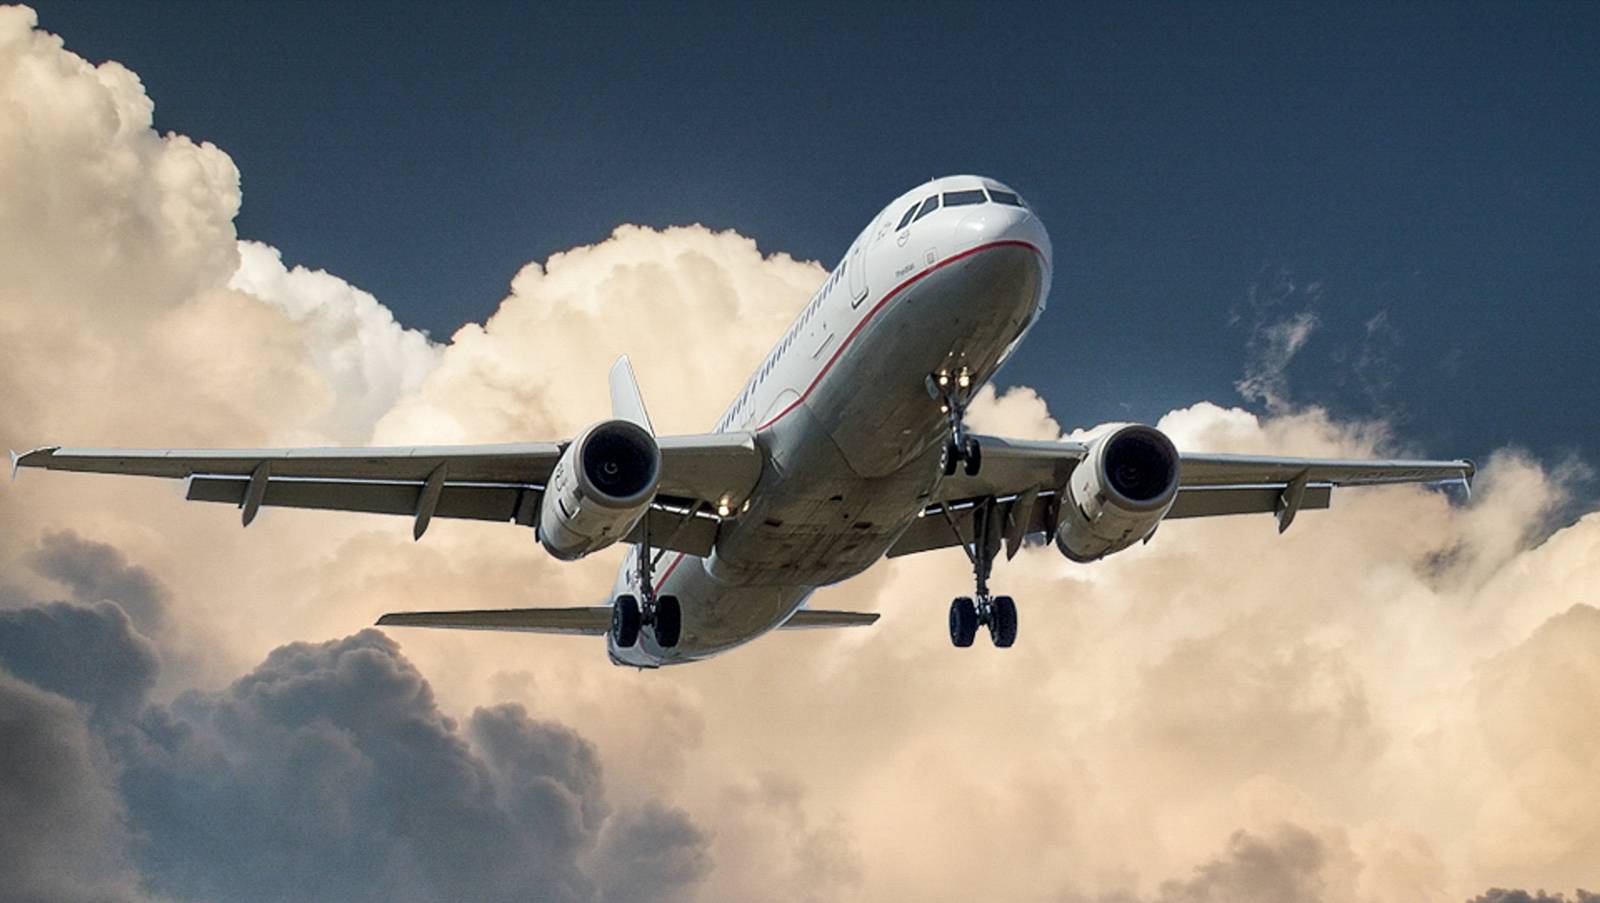 aircraft-jet-landing-cloud-46148